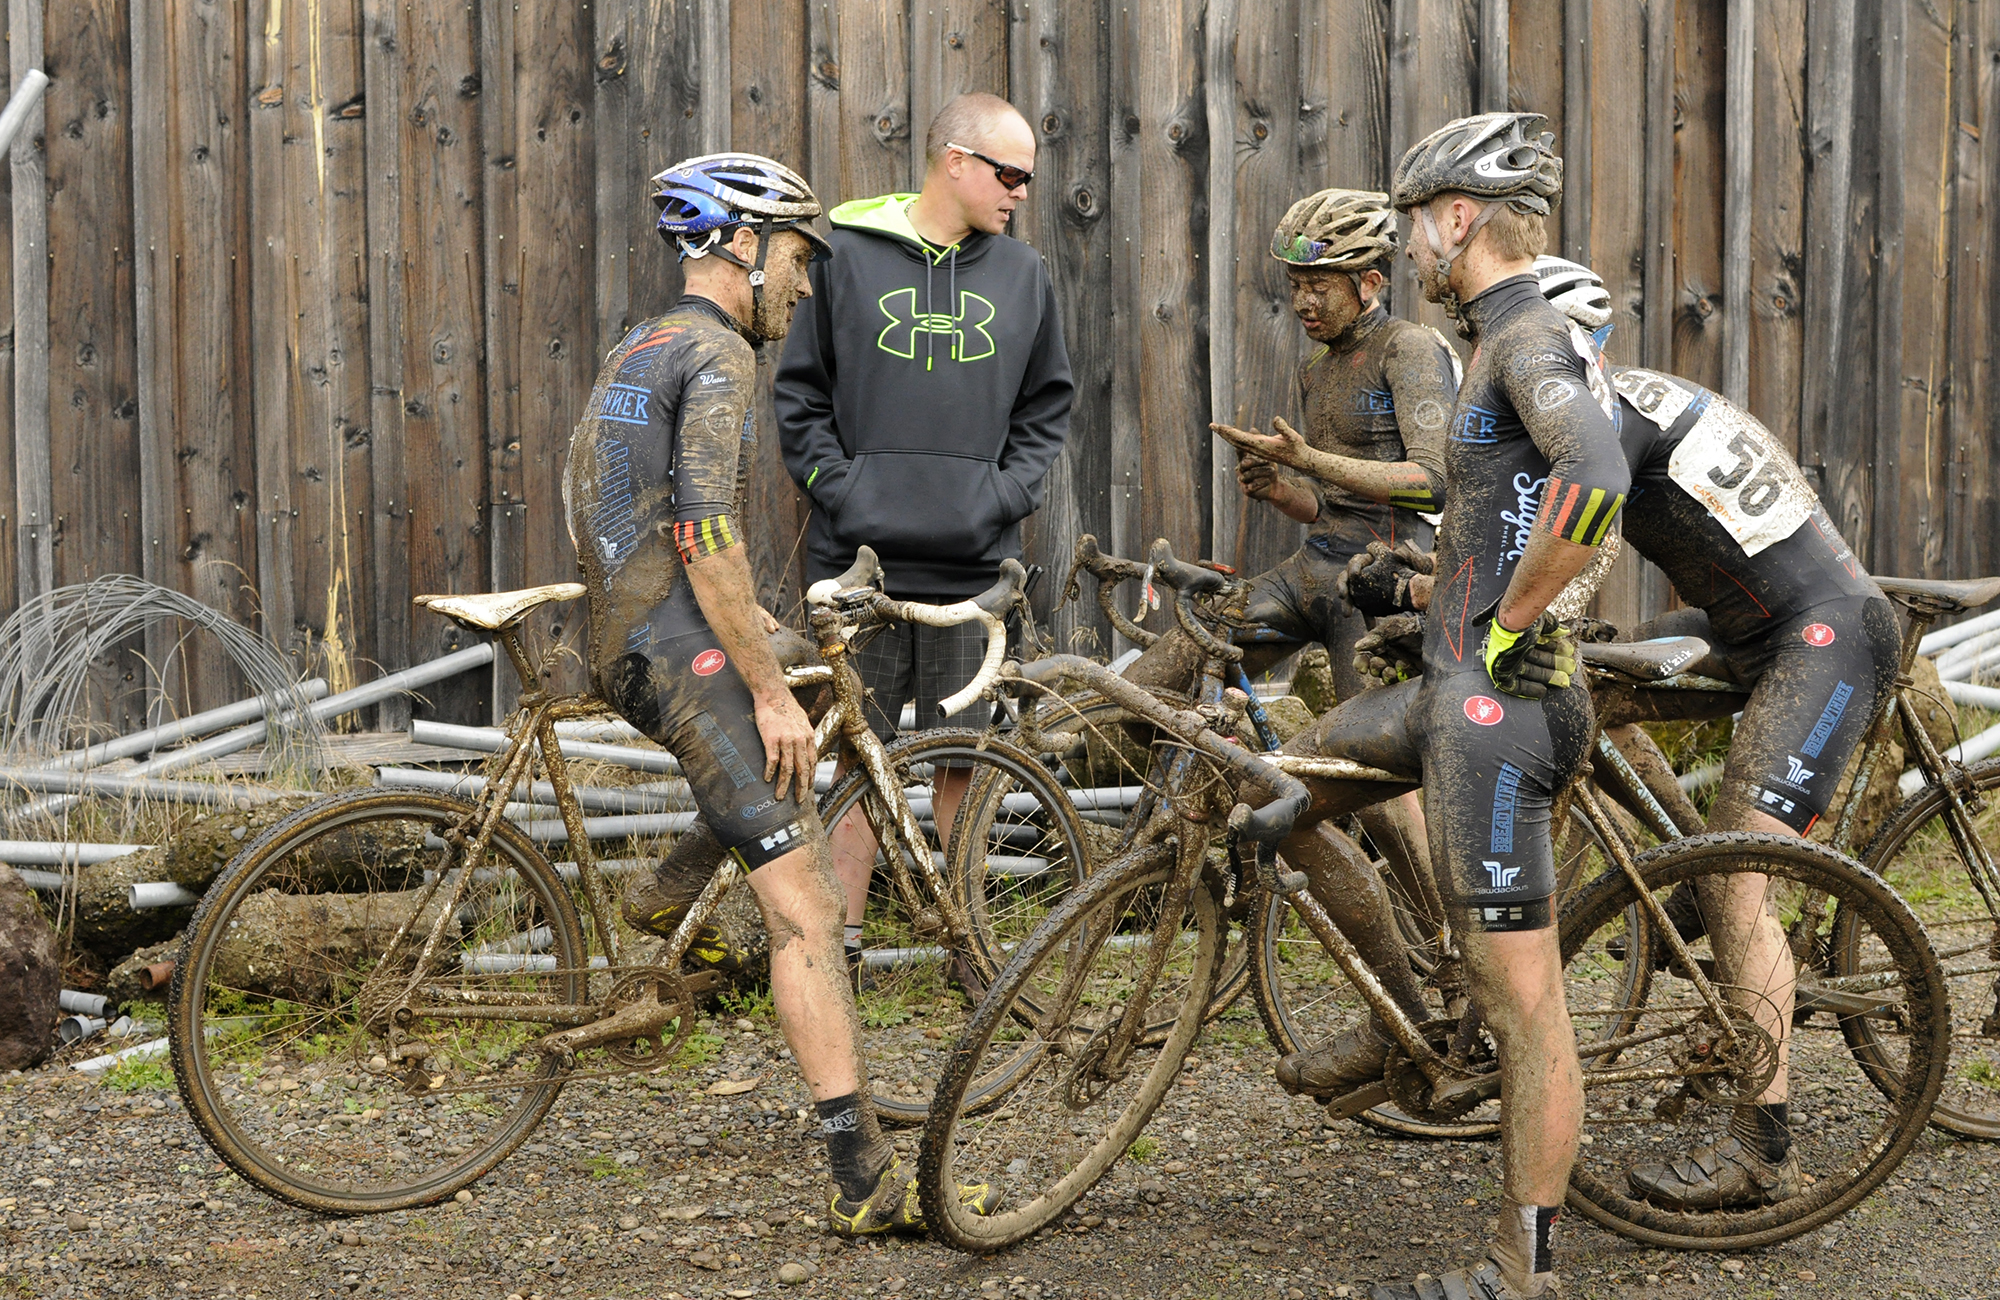 SellwoodCycle_CCBP_64